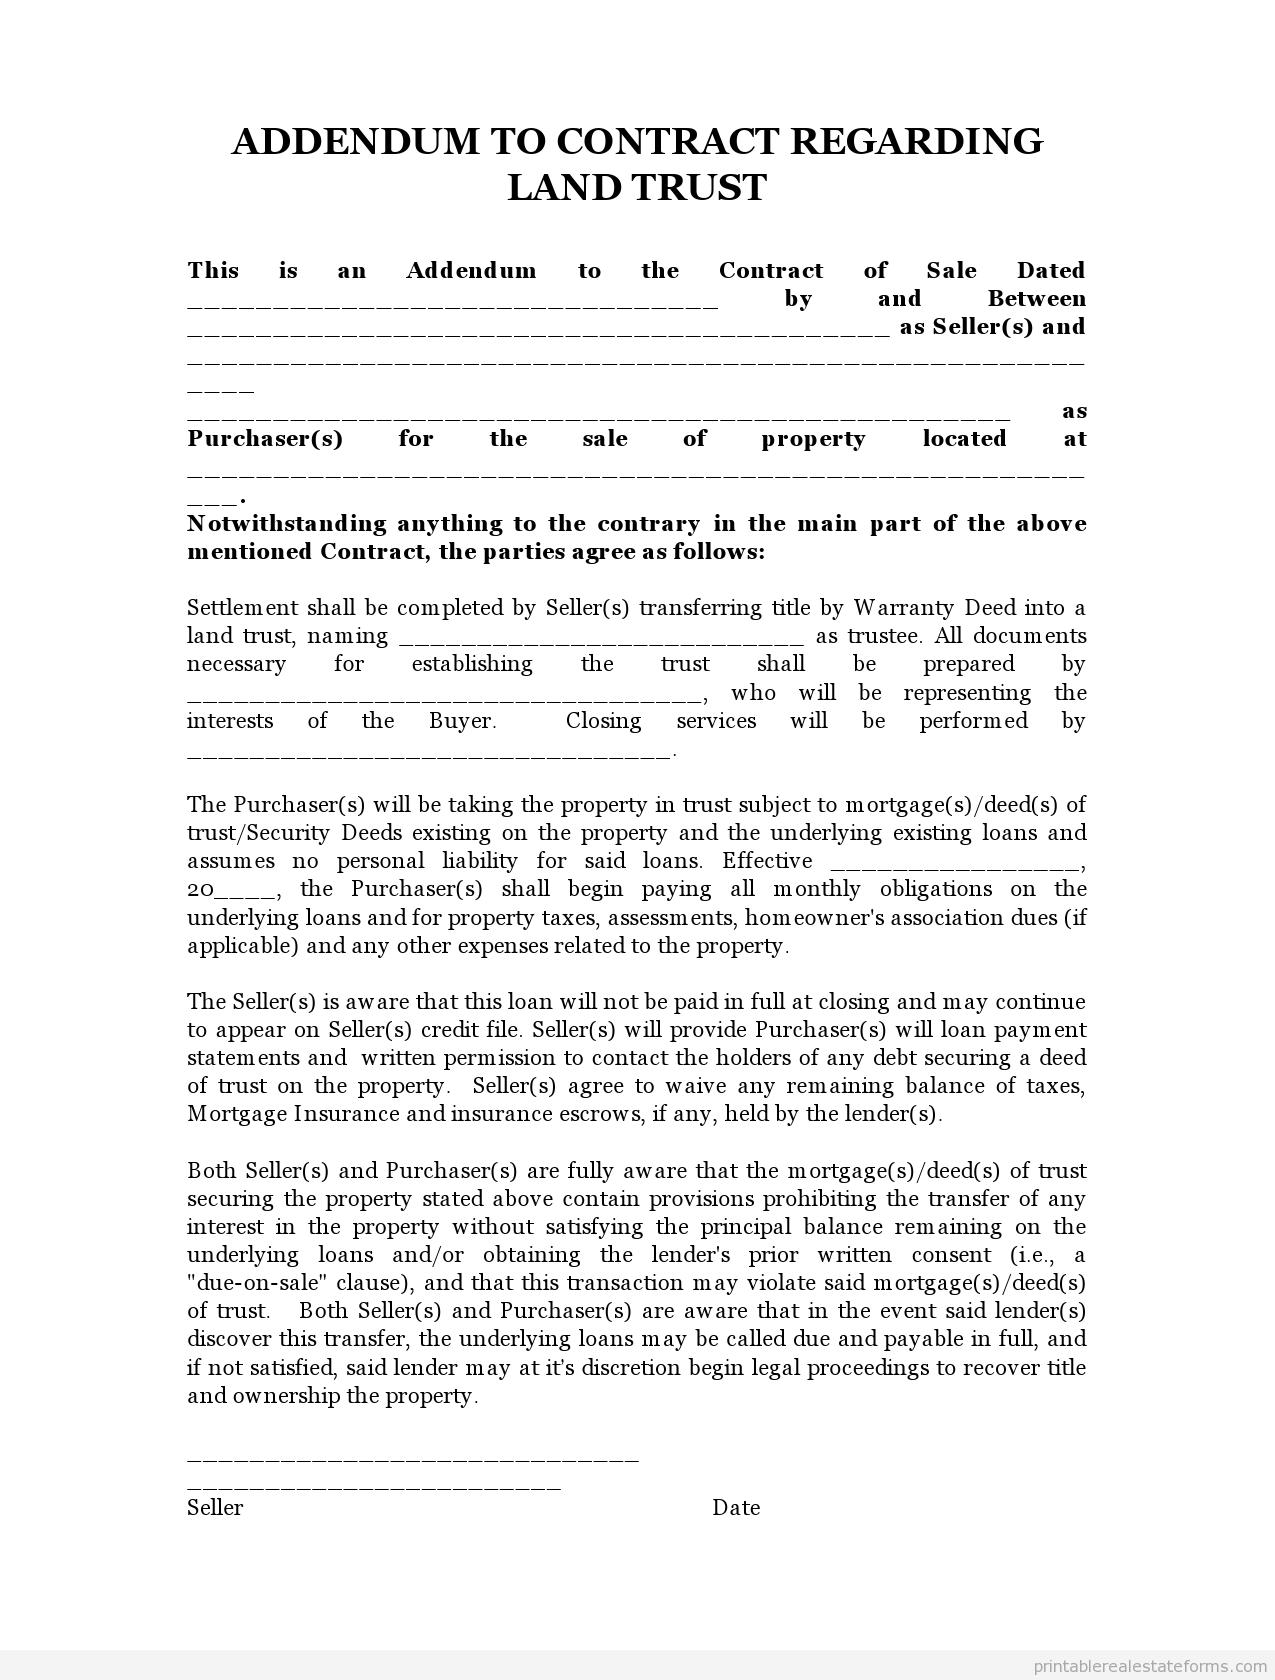 Sample Printable land trust addendum 2 Form Sample Real Estate